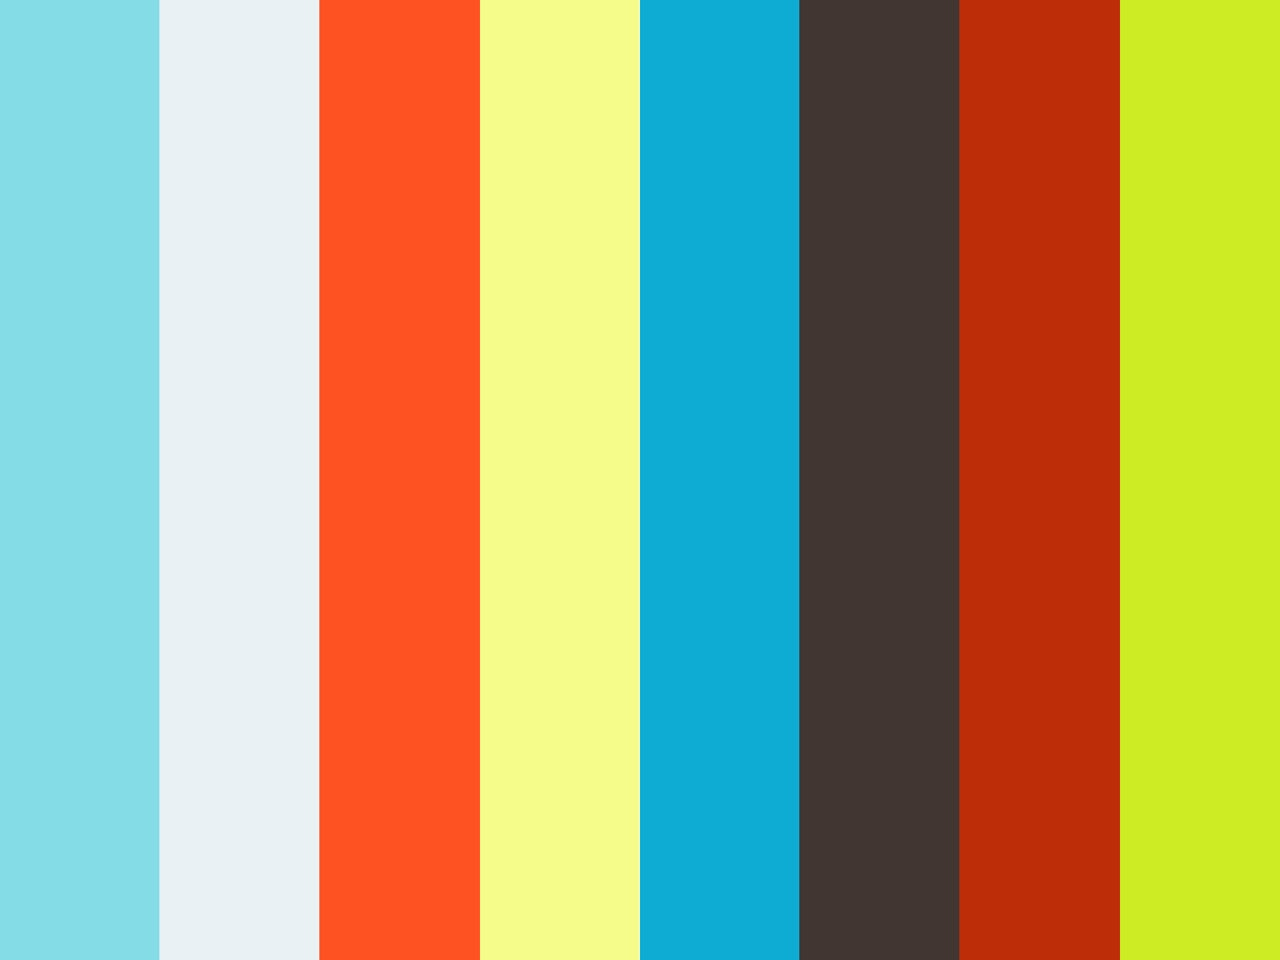 New York Workers' Compensation Law Changes